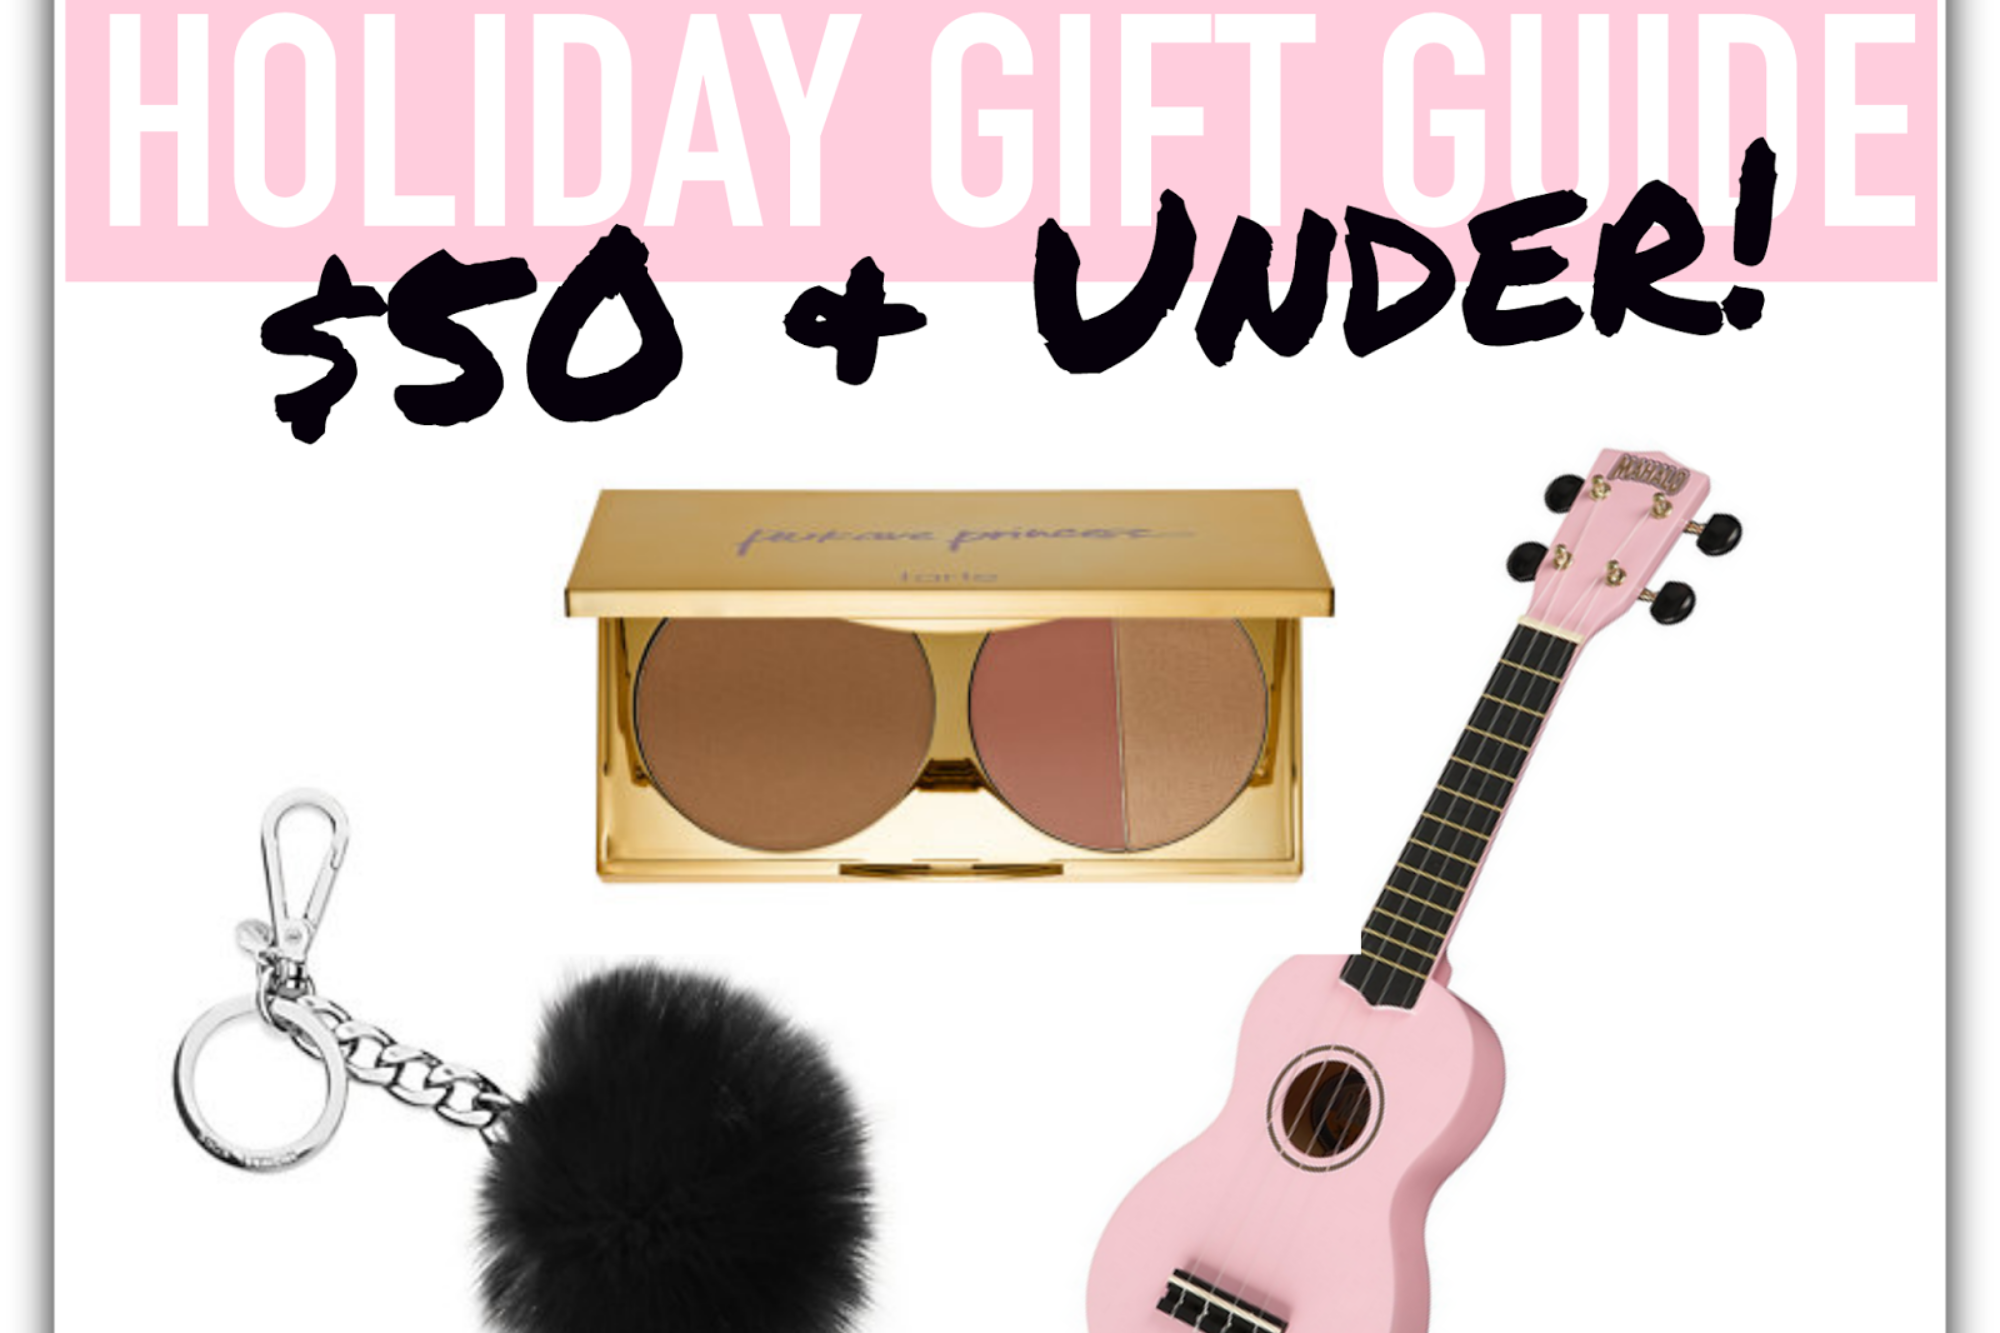 HOLIDAY GIFT GUIDE 2014: $50 & Under!